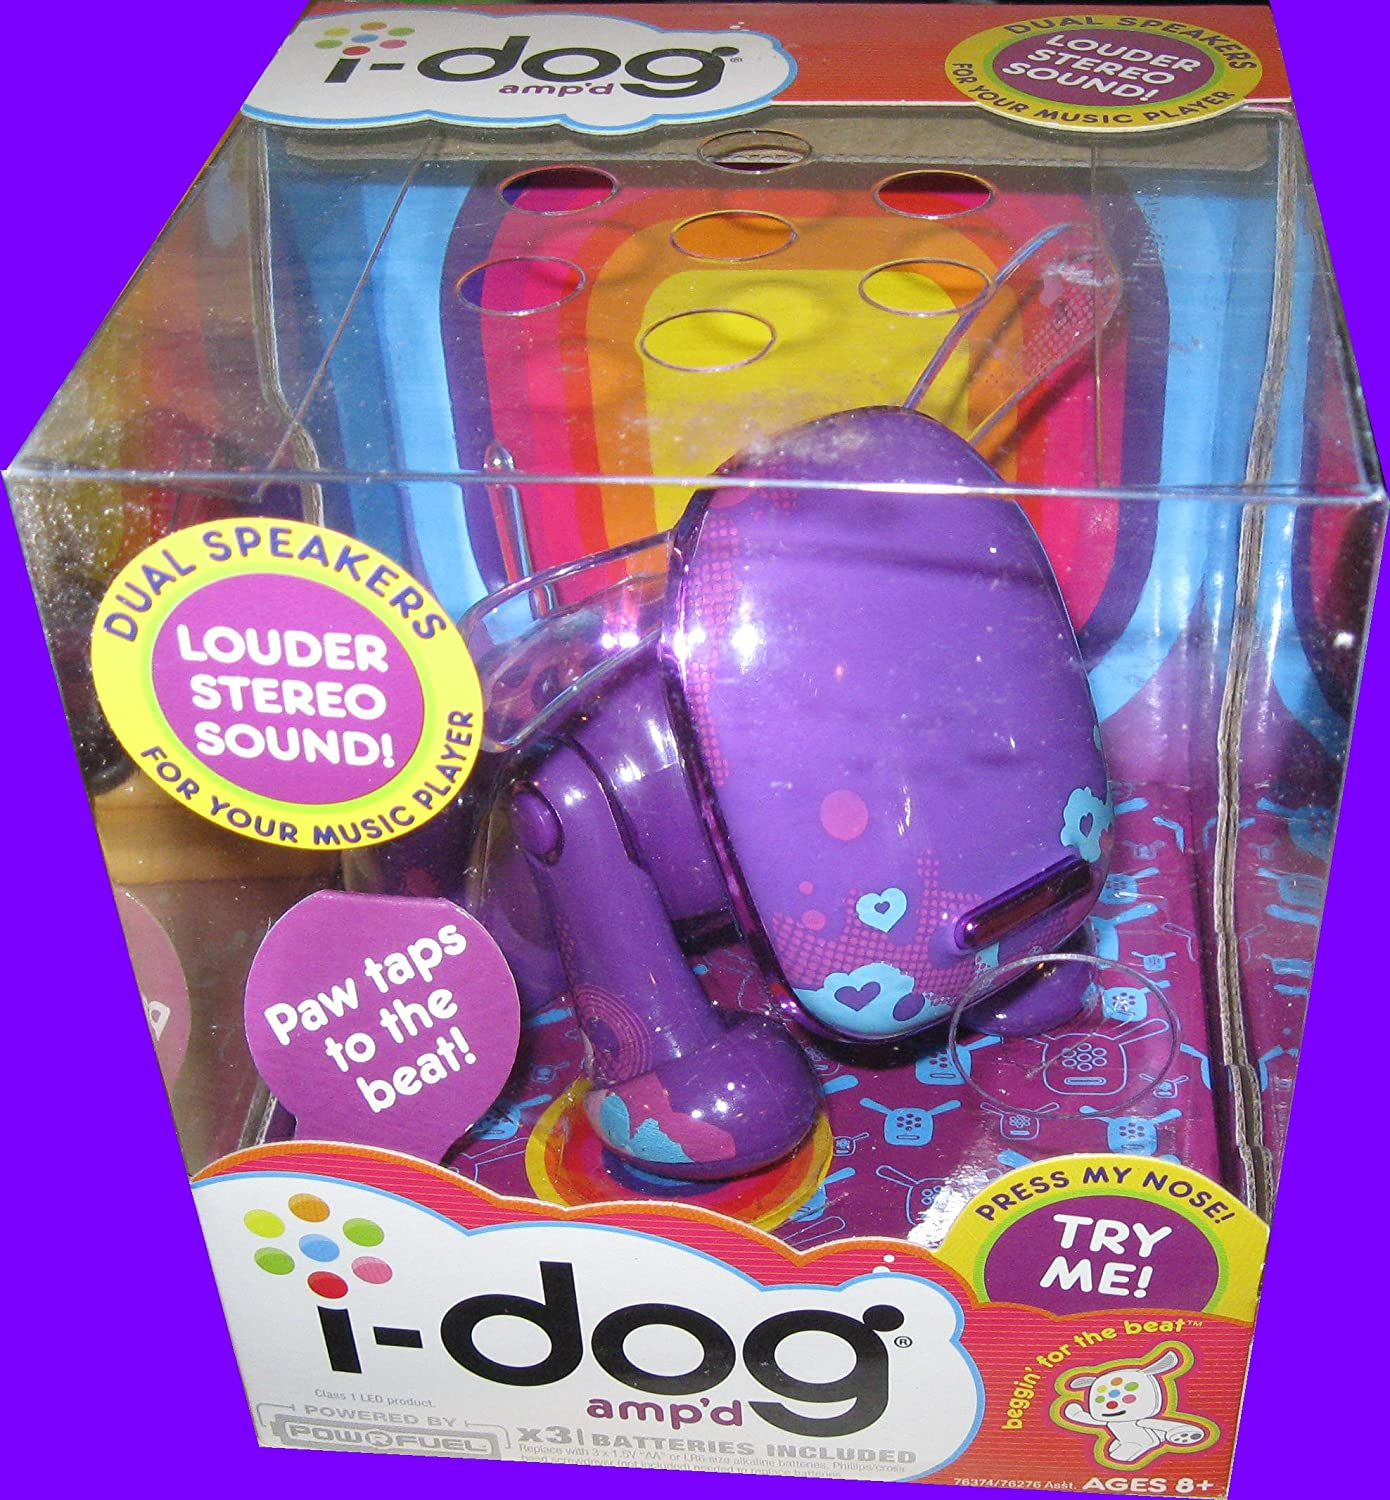 I-DOG Genuine AMP'D PURPLE - Limited time sale INTERACTIVE DOG ELECTRONIC PET